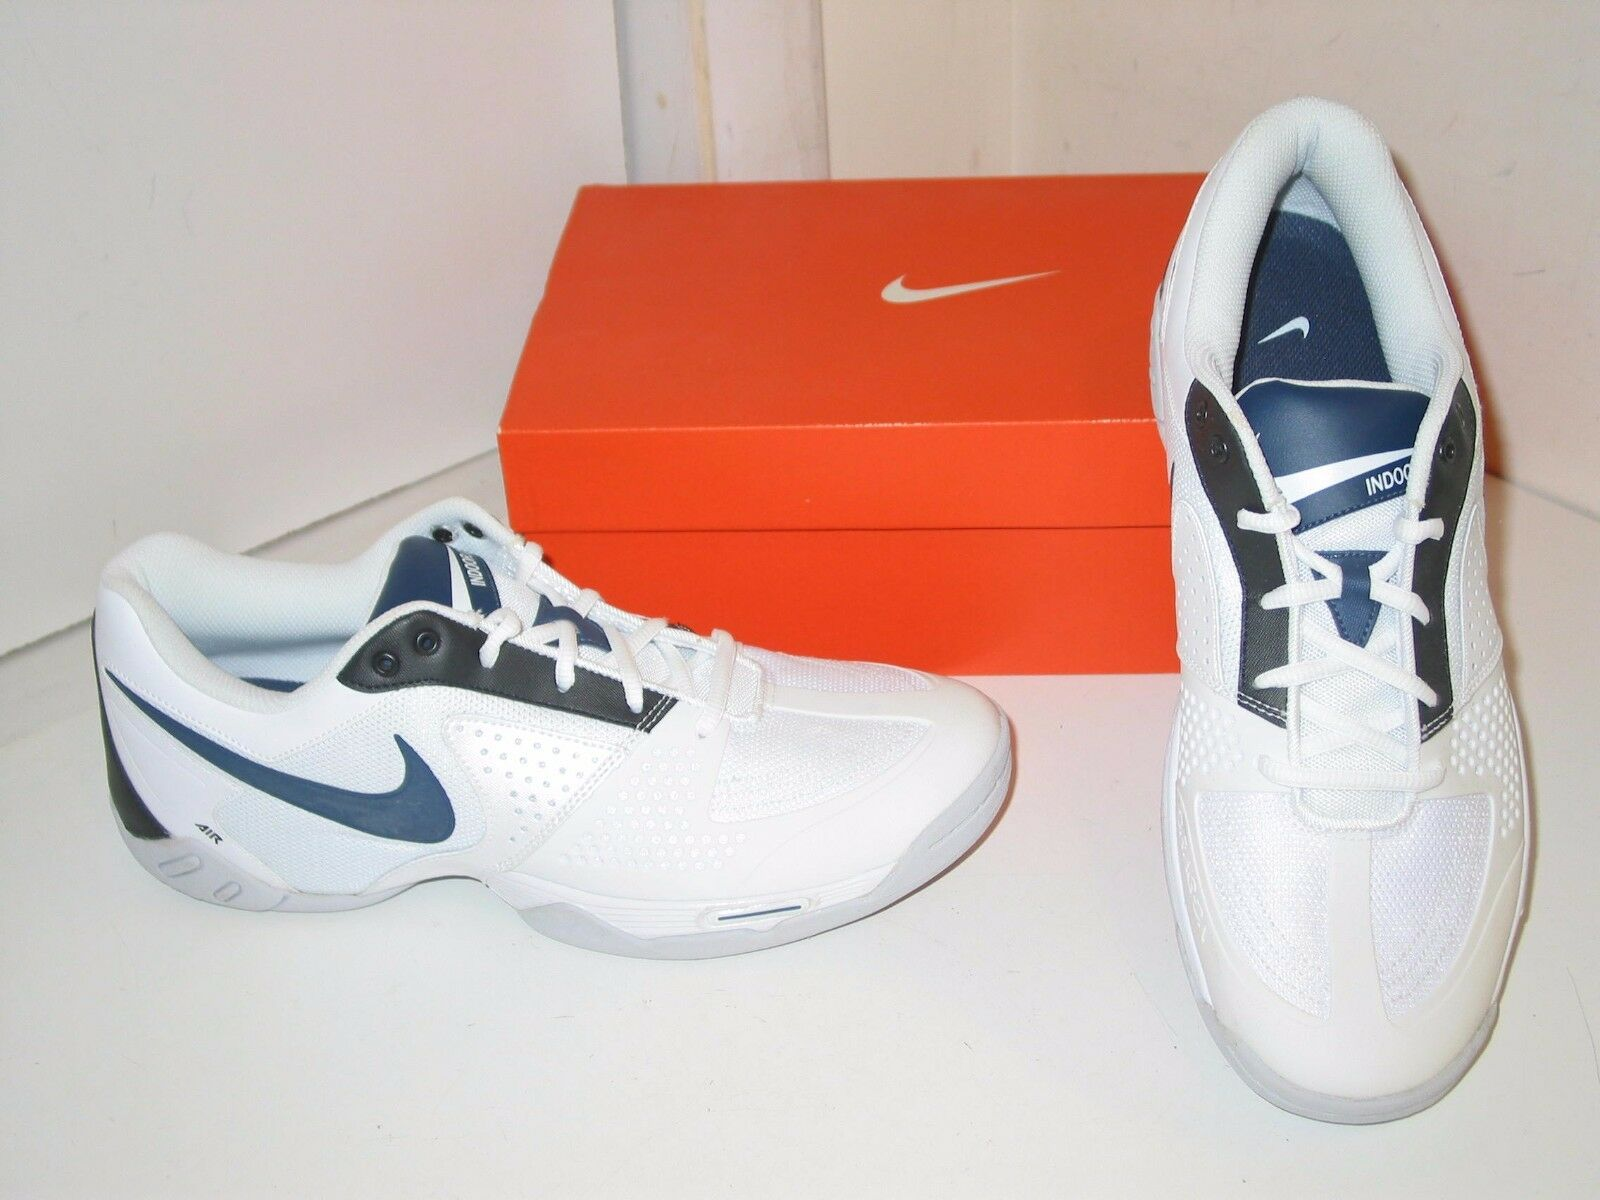 Nike Air Ultimate Dig Volleyball Cheerleading Cheer Sneakers Shoes Womens 12